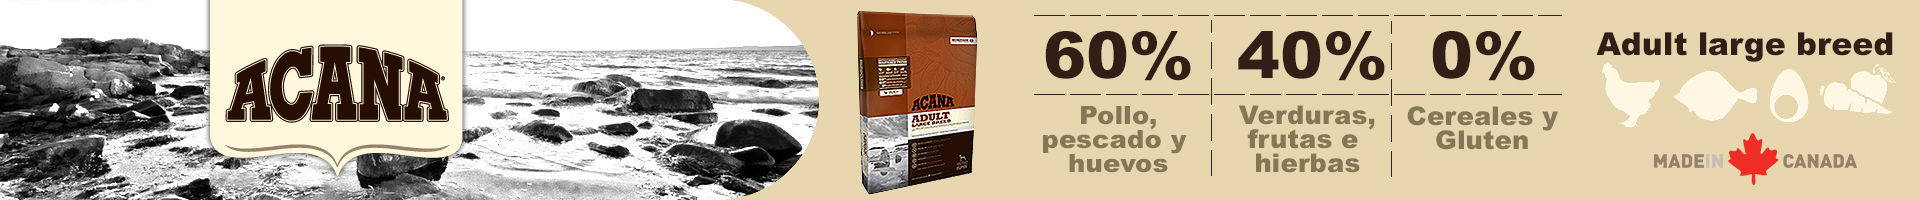 Acana adult large breed, alimento con 60% de carnes.